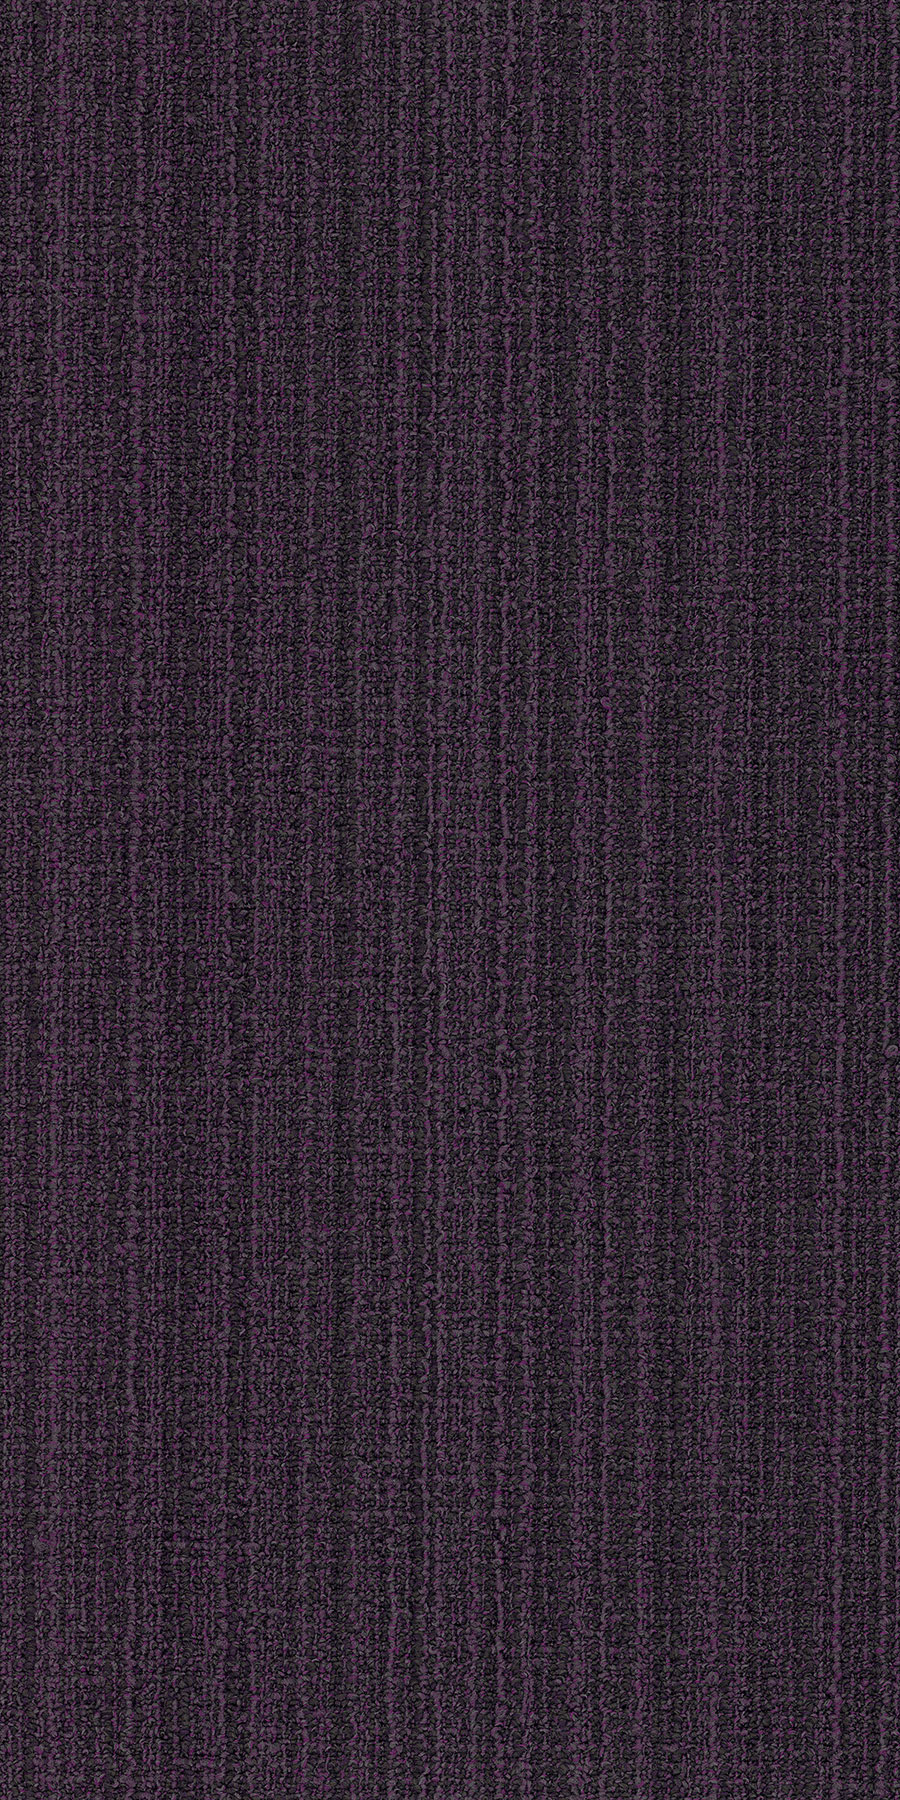 Amtico International: Network Amethyst